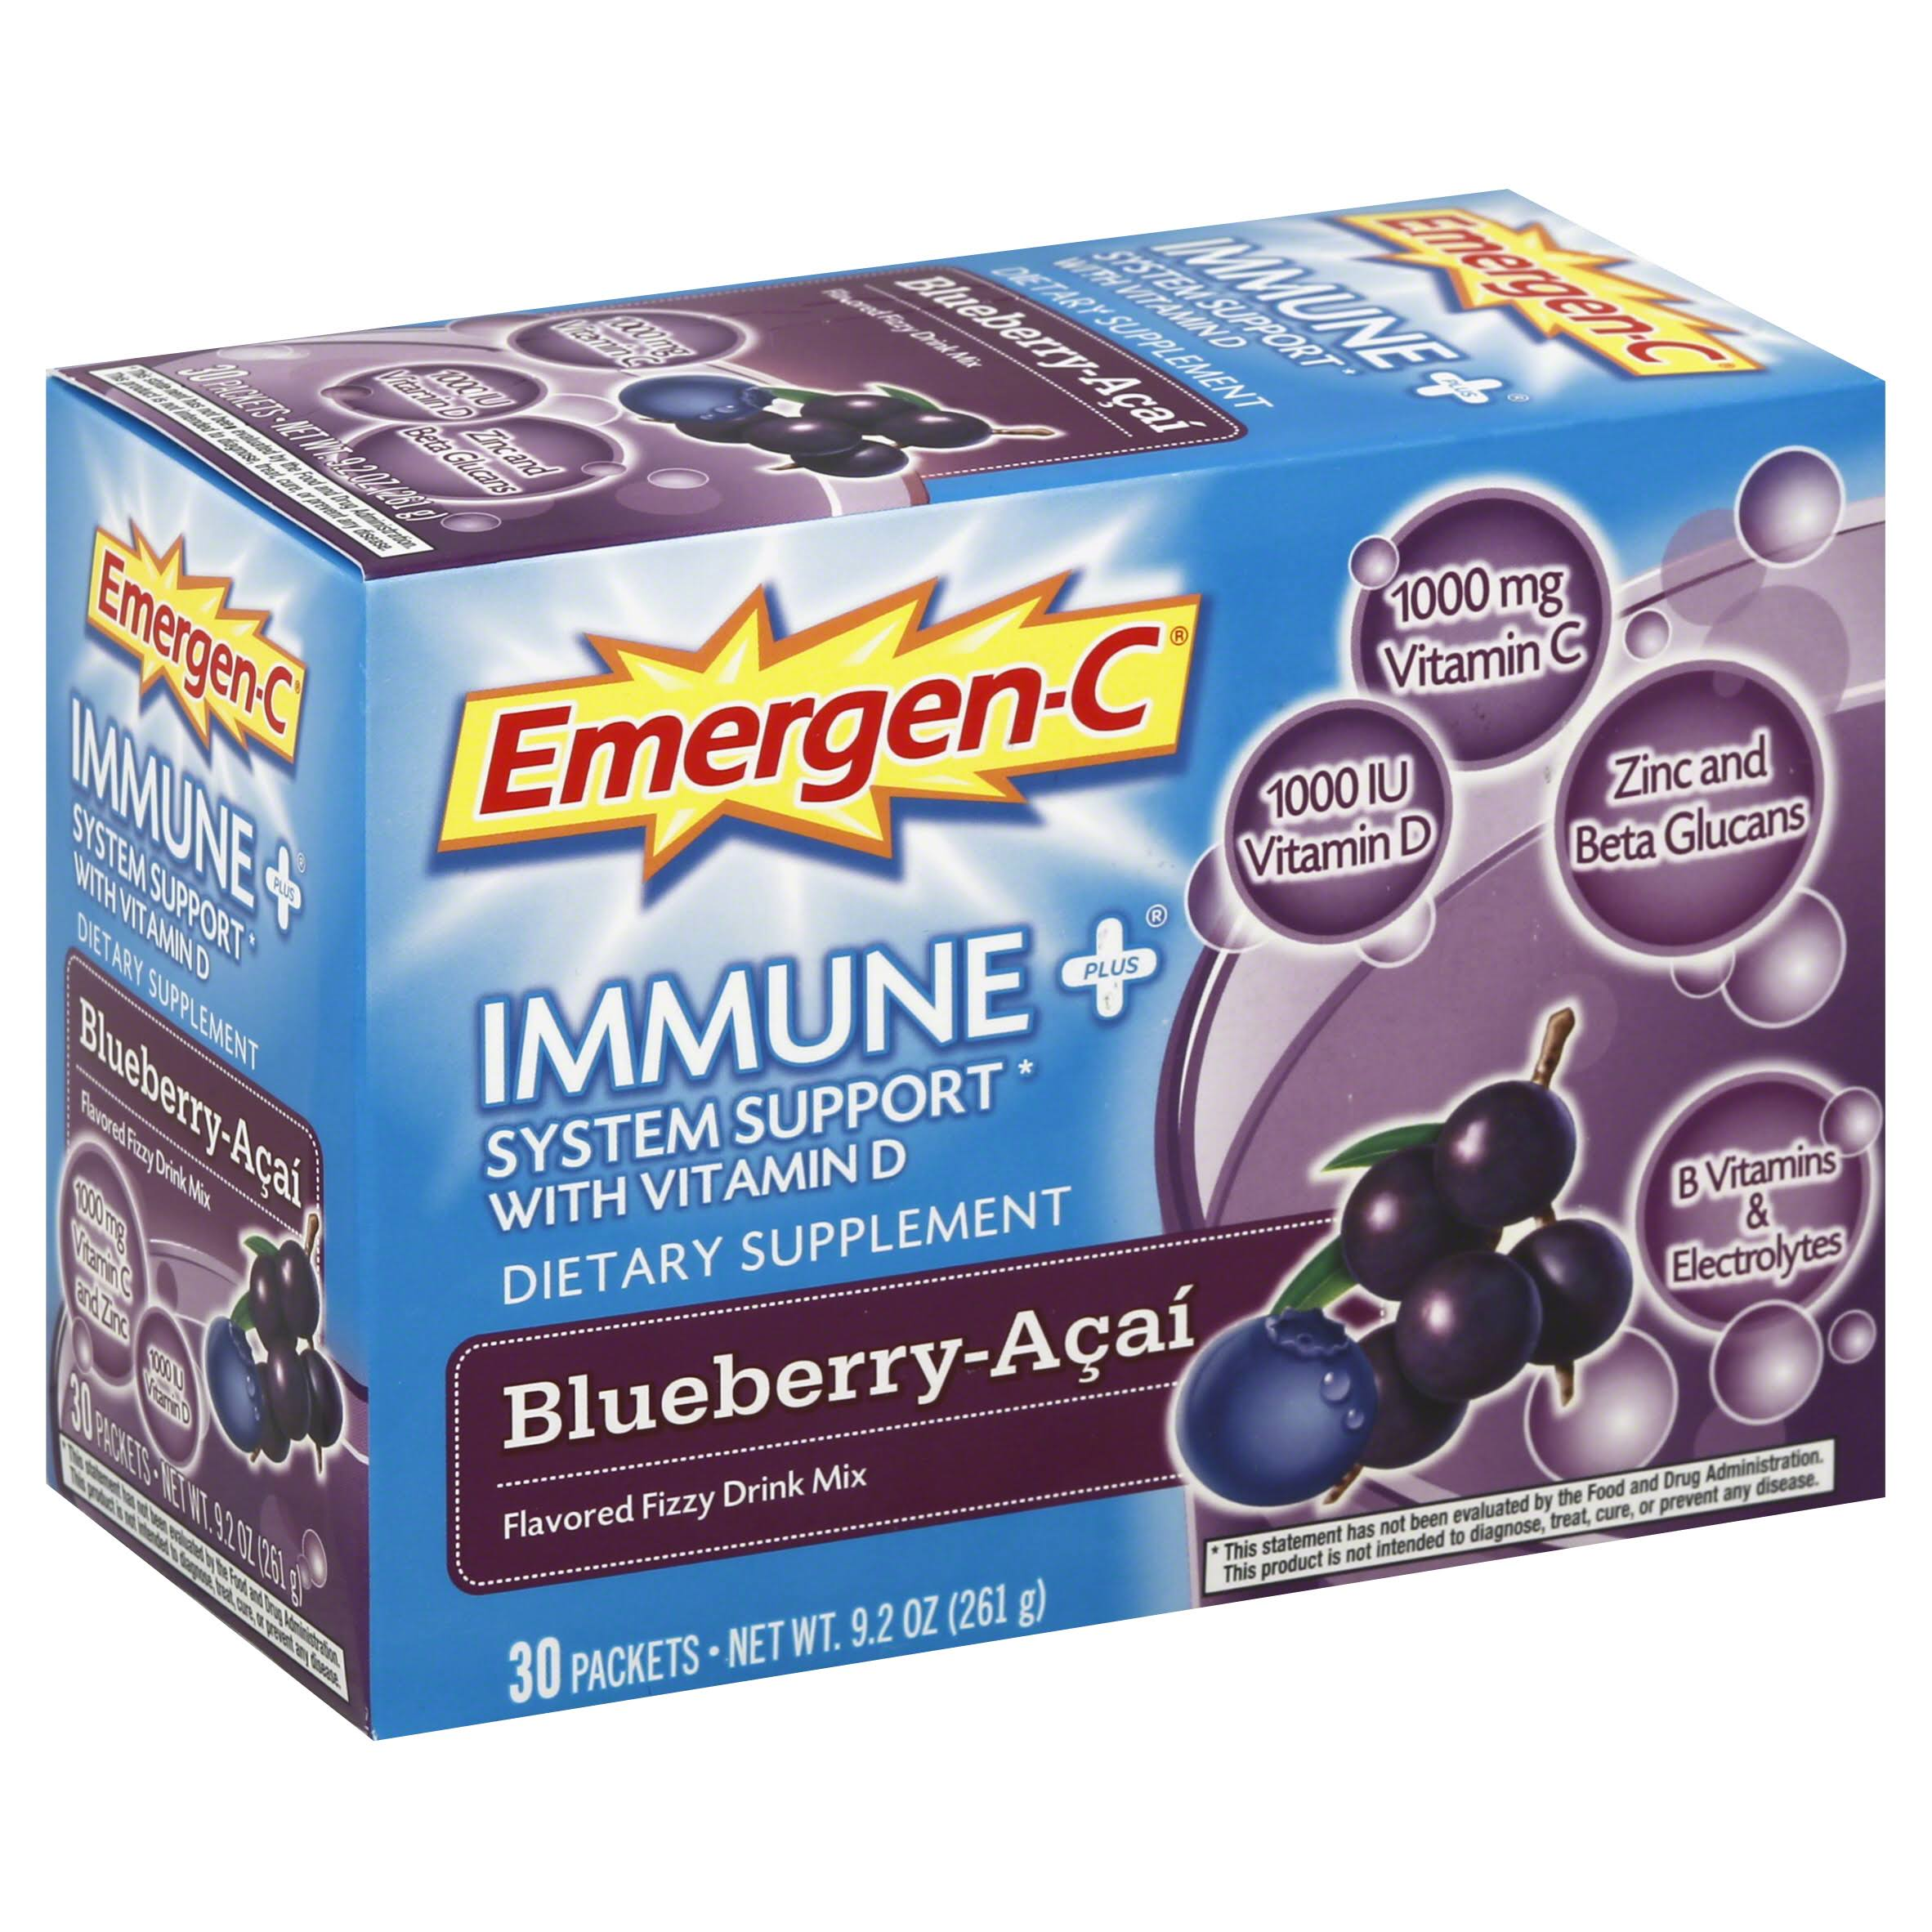 Emergen-C Immune+ System Support With Vitamin D - 30 Packets, 261g, Blueberry-Acai